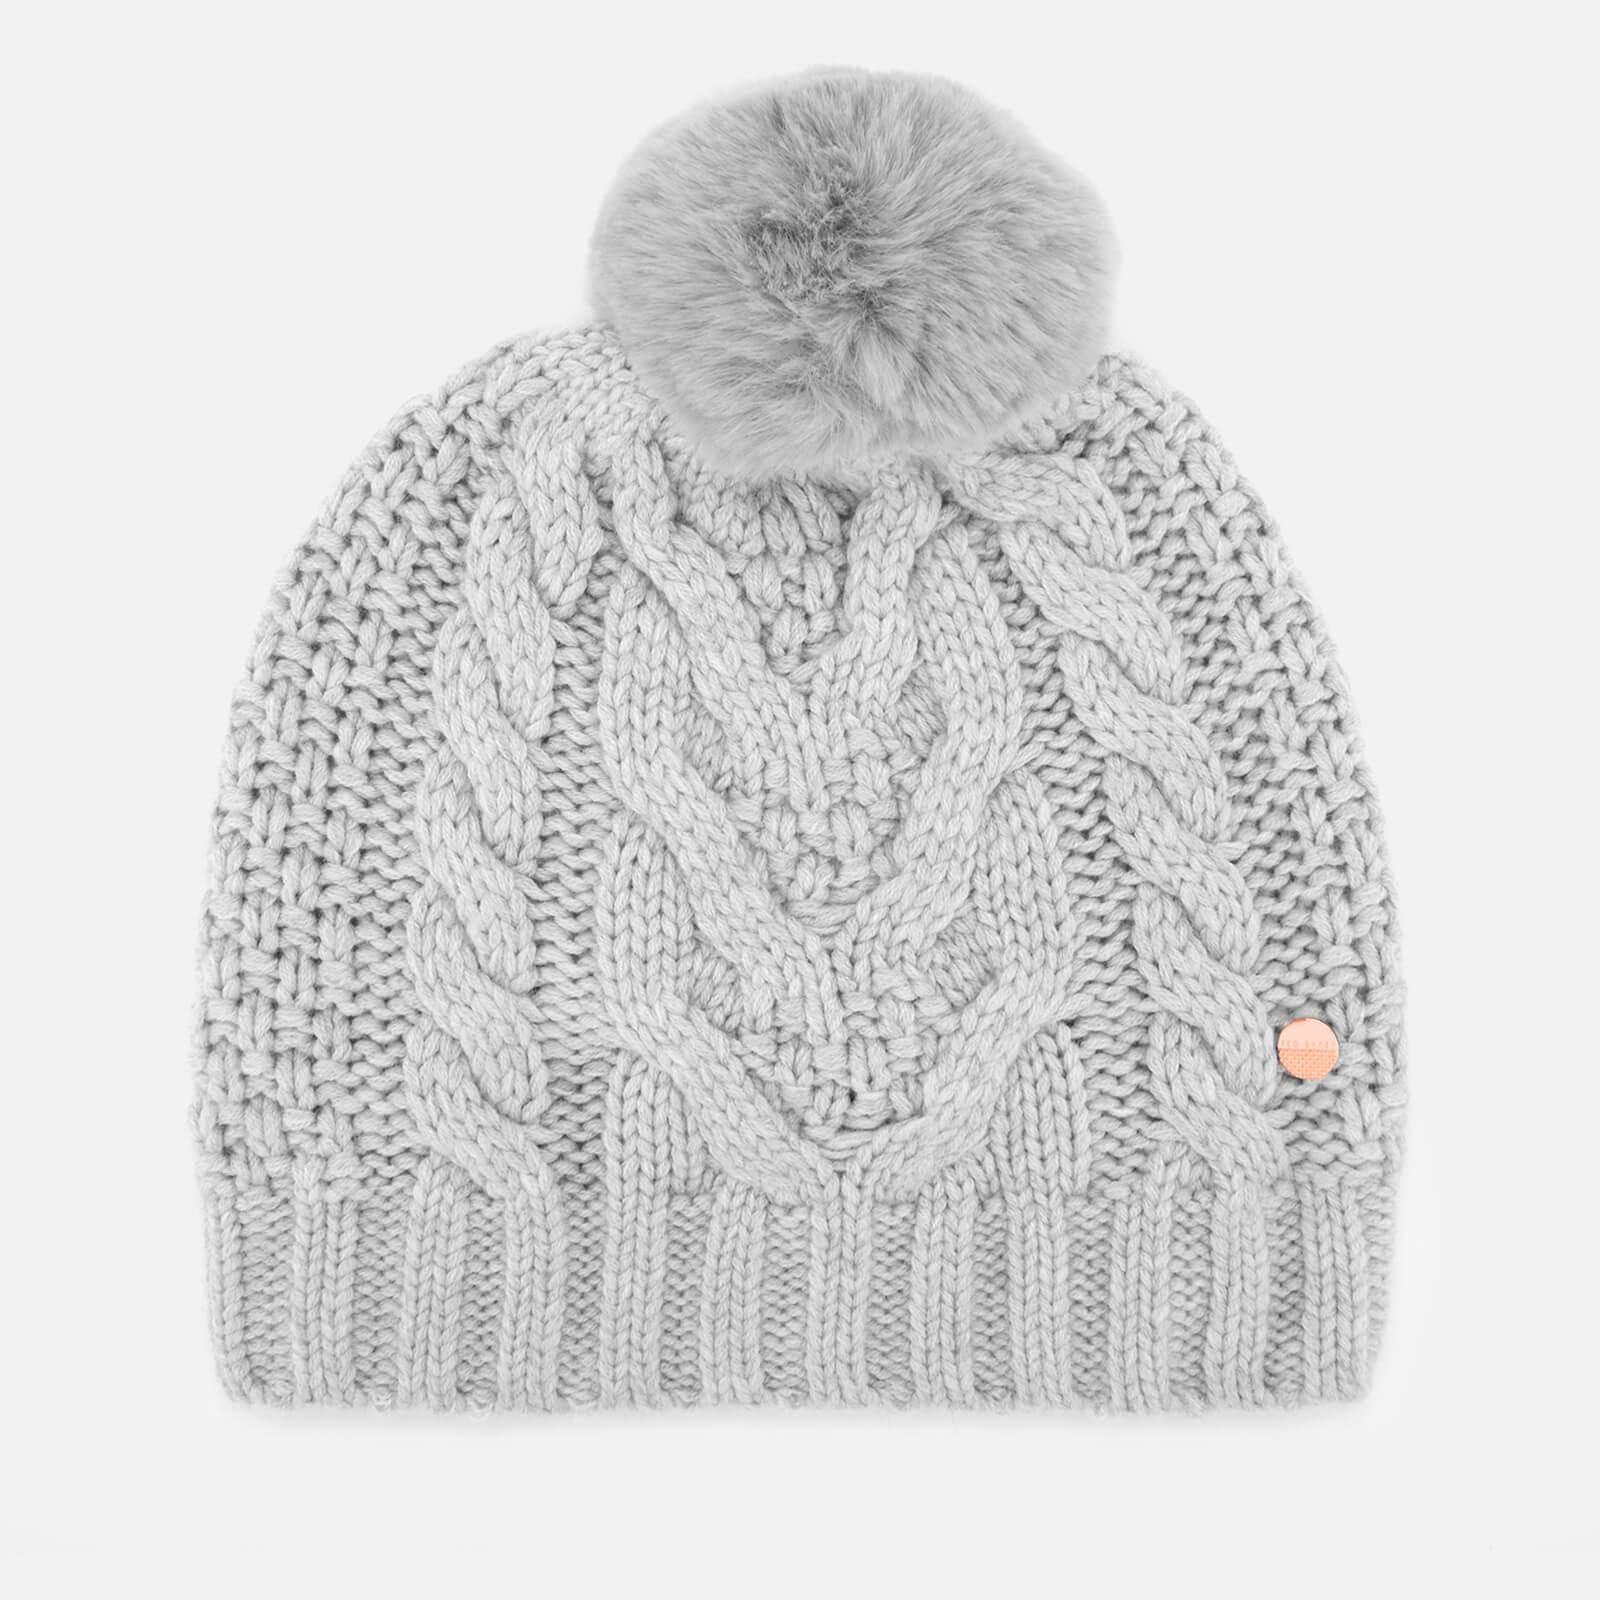 Lyst - Ted Baker Quirsa Cable Knit Pom Hat in Gray - Save 23% 4c2a2c5ba7d1